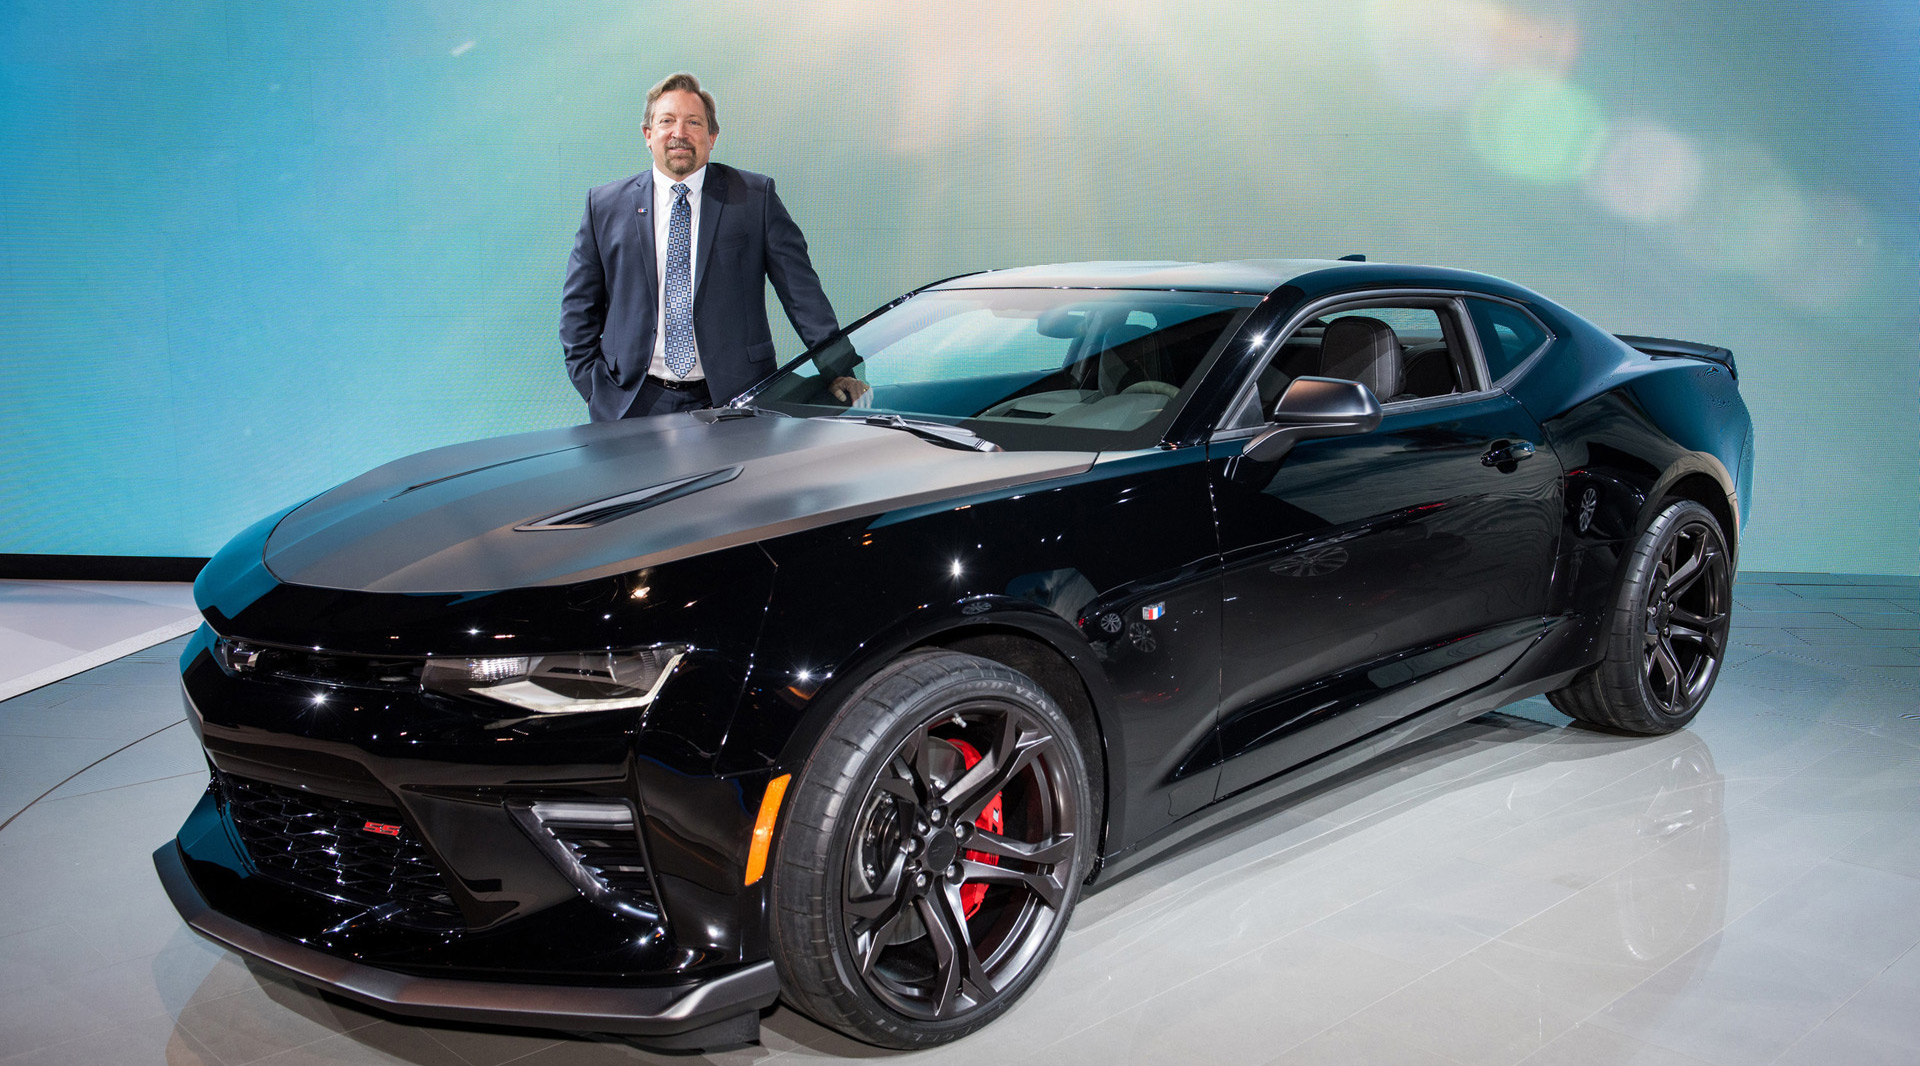 Camaro Chief Engineer Reassigned To Work On Electric Cars